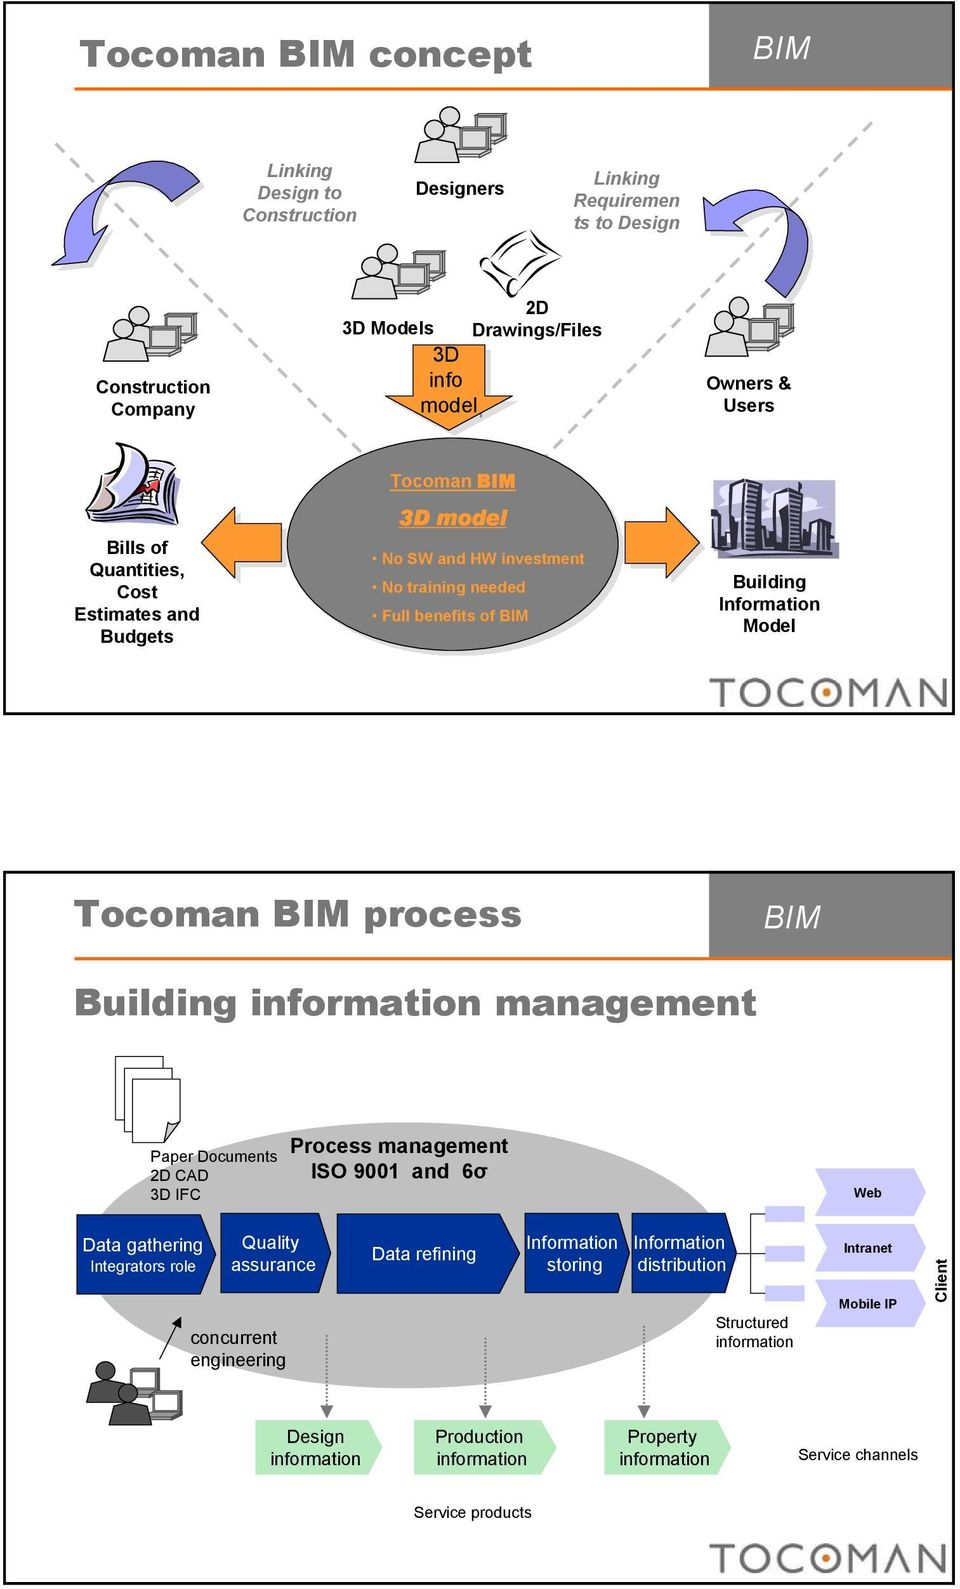 information management Paper Documents 2D CAD 3D IFC Process management ISO 9001 and 6σ Web Data gathering Integrators role Quality assurance concurrent engineering Data refining